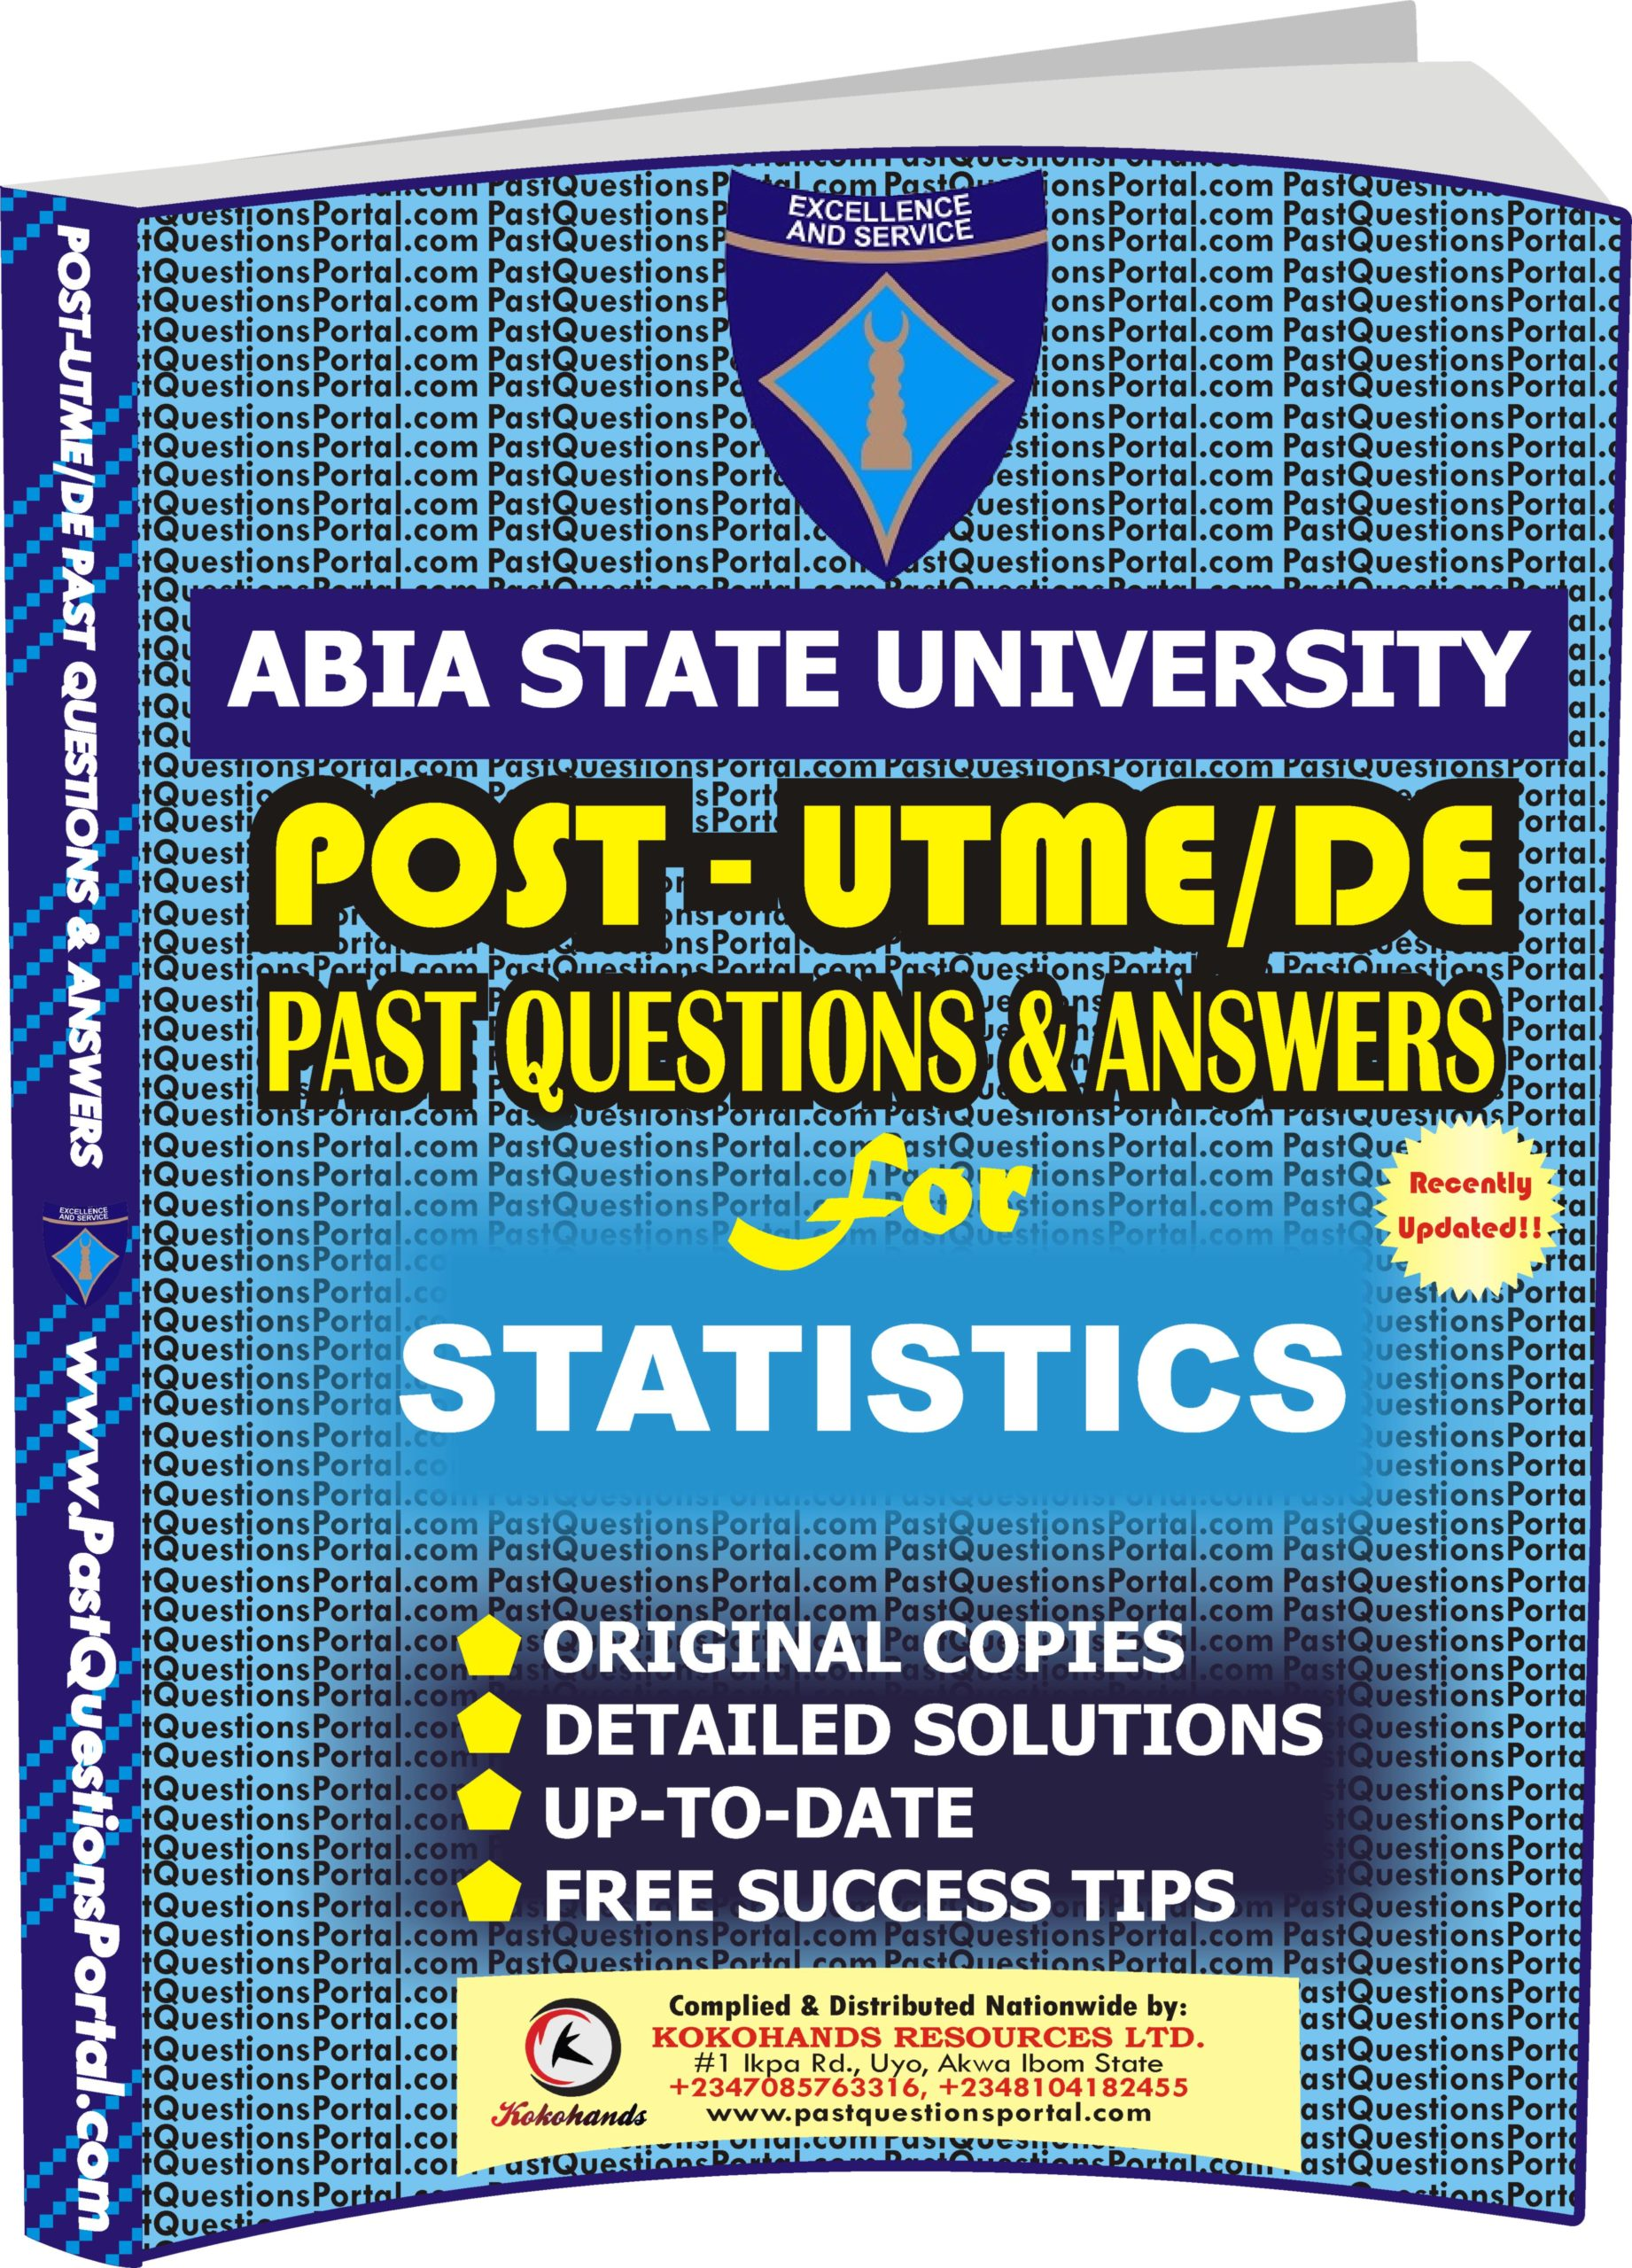 ABSU Post UTME Past Questions for STATISTICS